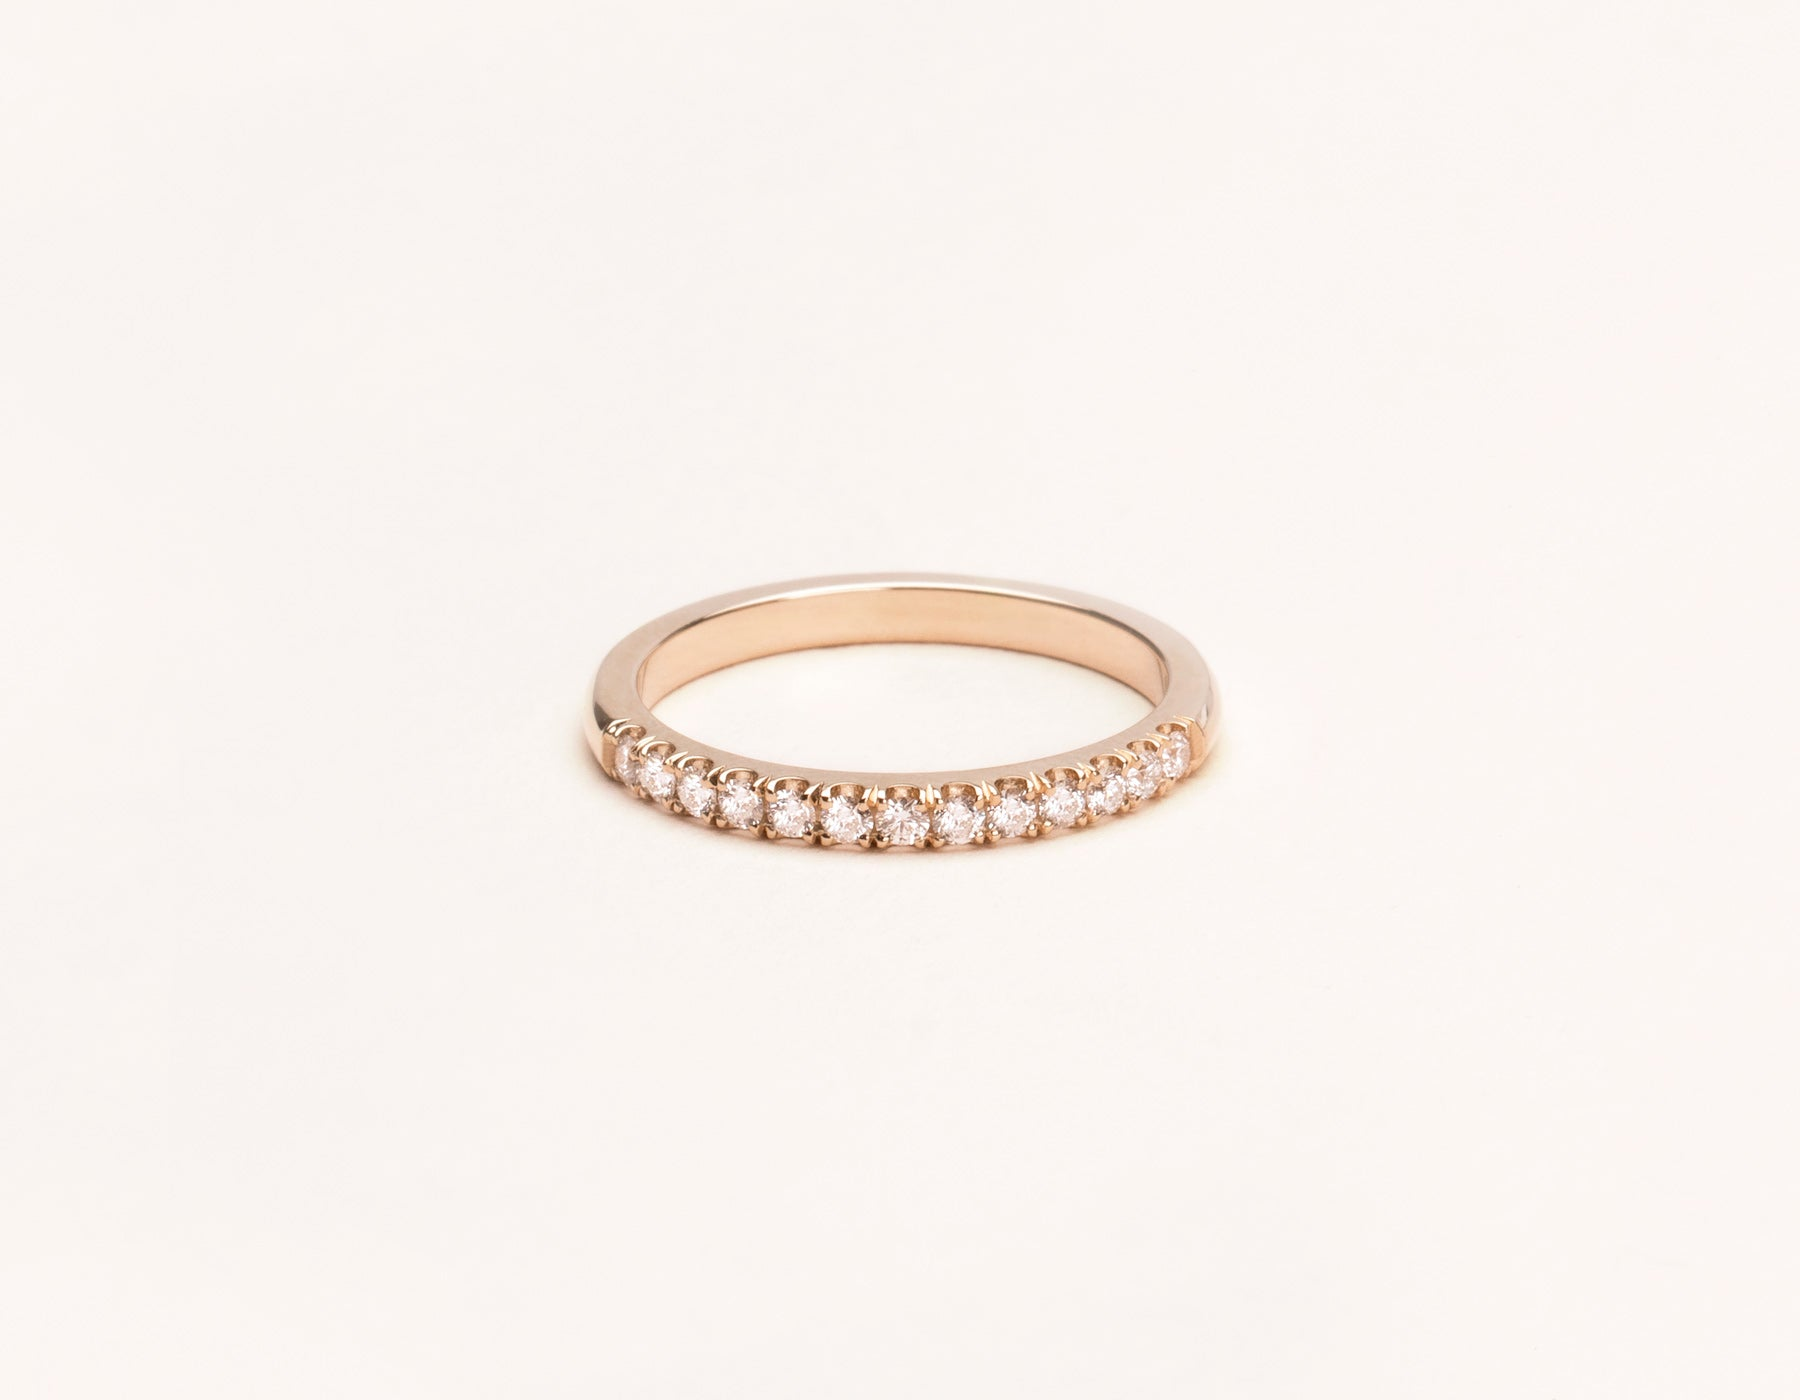 plated gold simply rings sterling silver pave zoom ring band jewellery intertwining bands rose zirconia cubic infinity